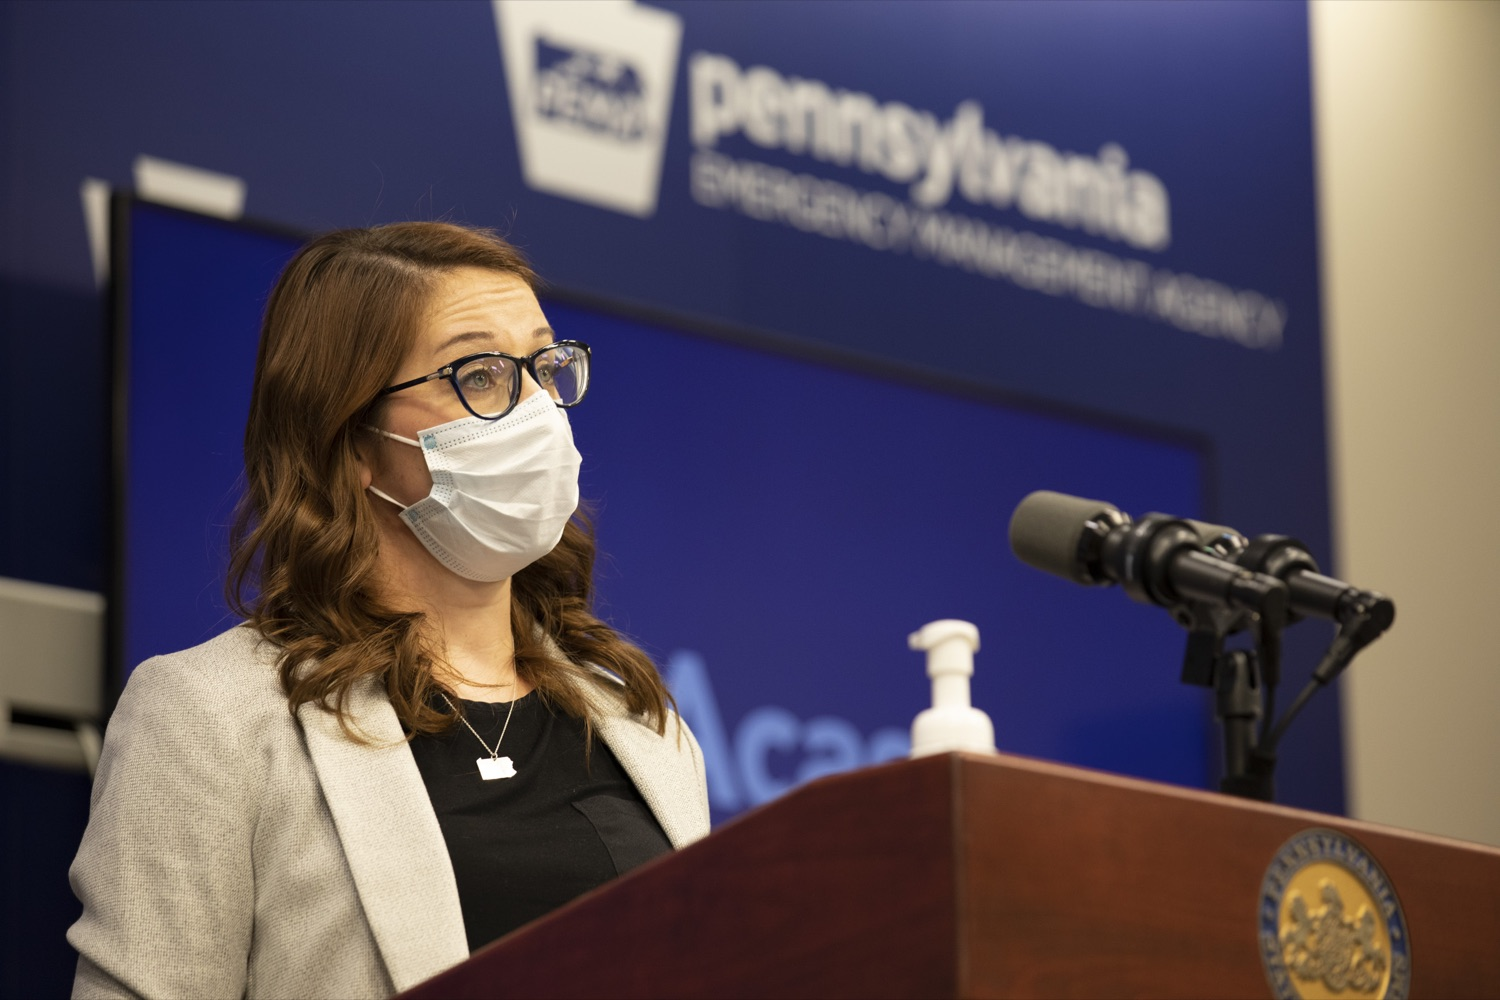 Lindsey Mauldin, Pa. Health Department senior advisor on covid-19 response, speaks during a media briefing on Tuesday, April 6, 2021. (Source: Pa.gov)